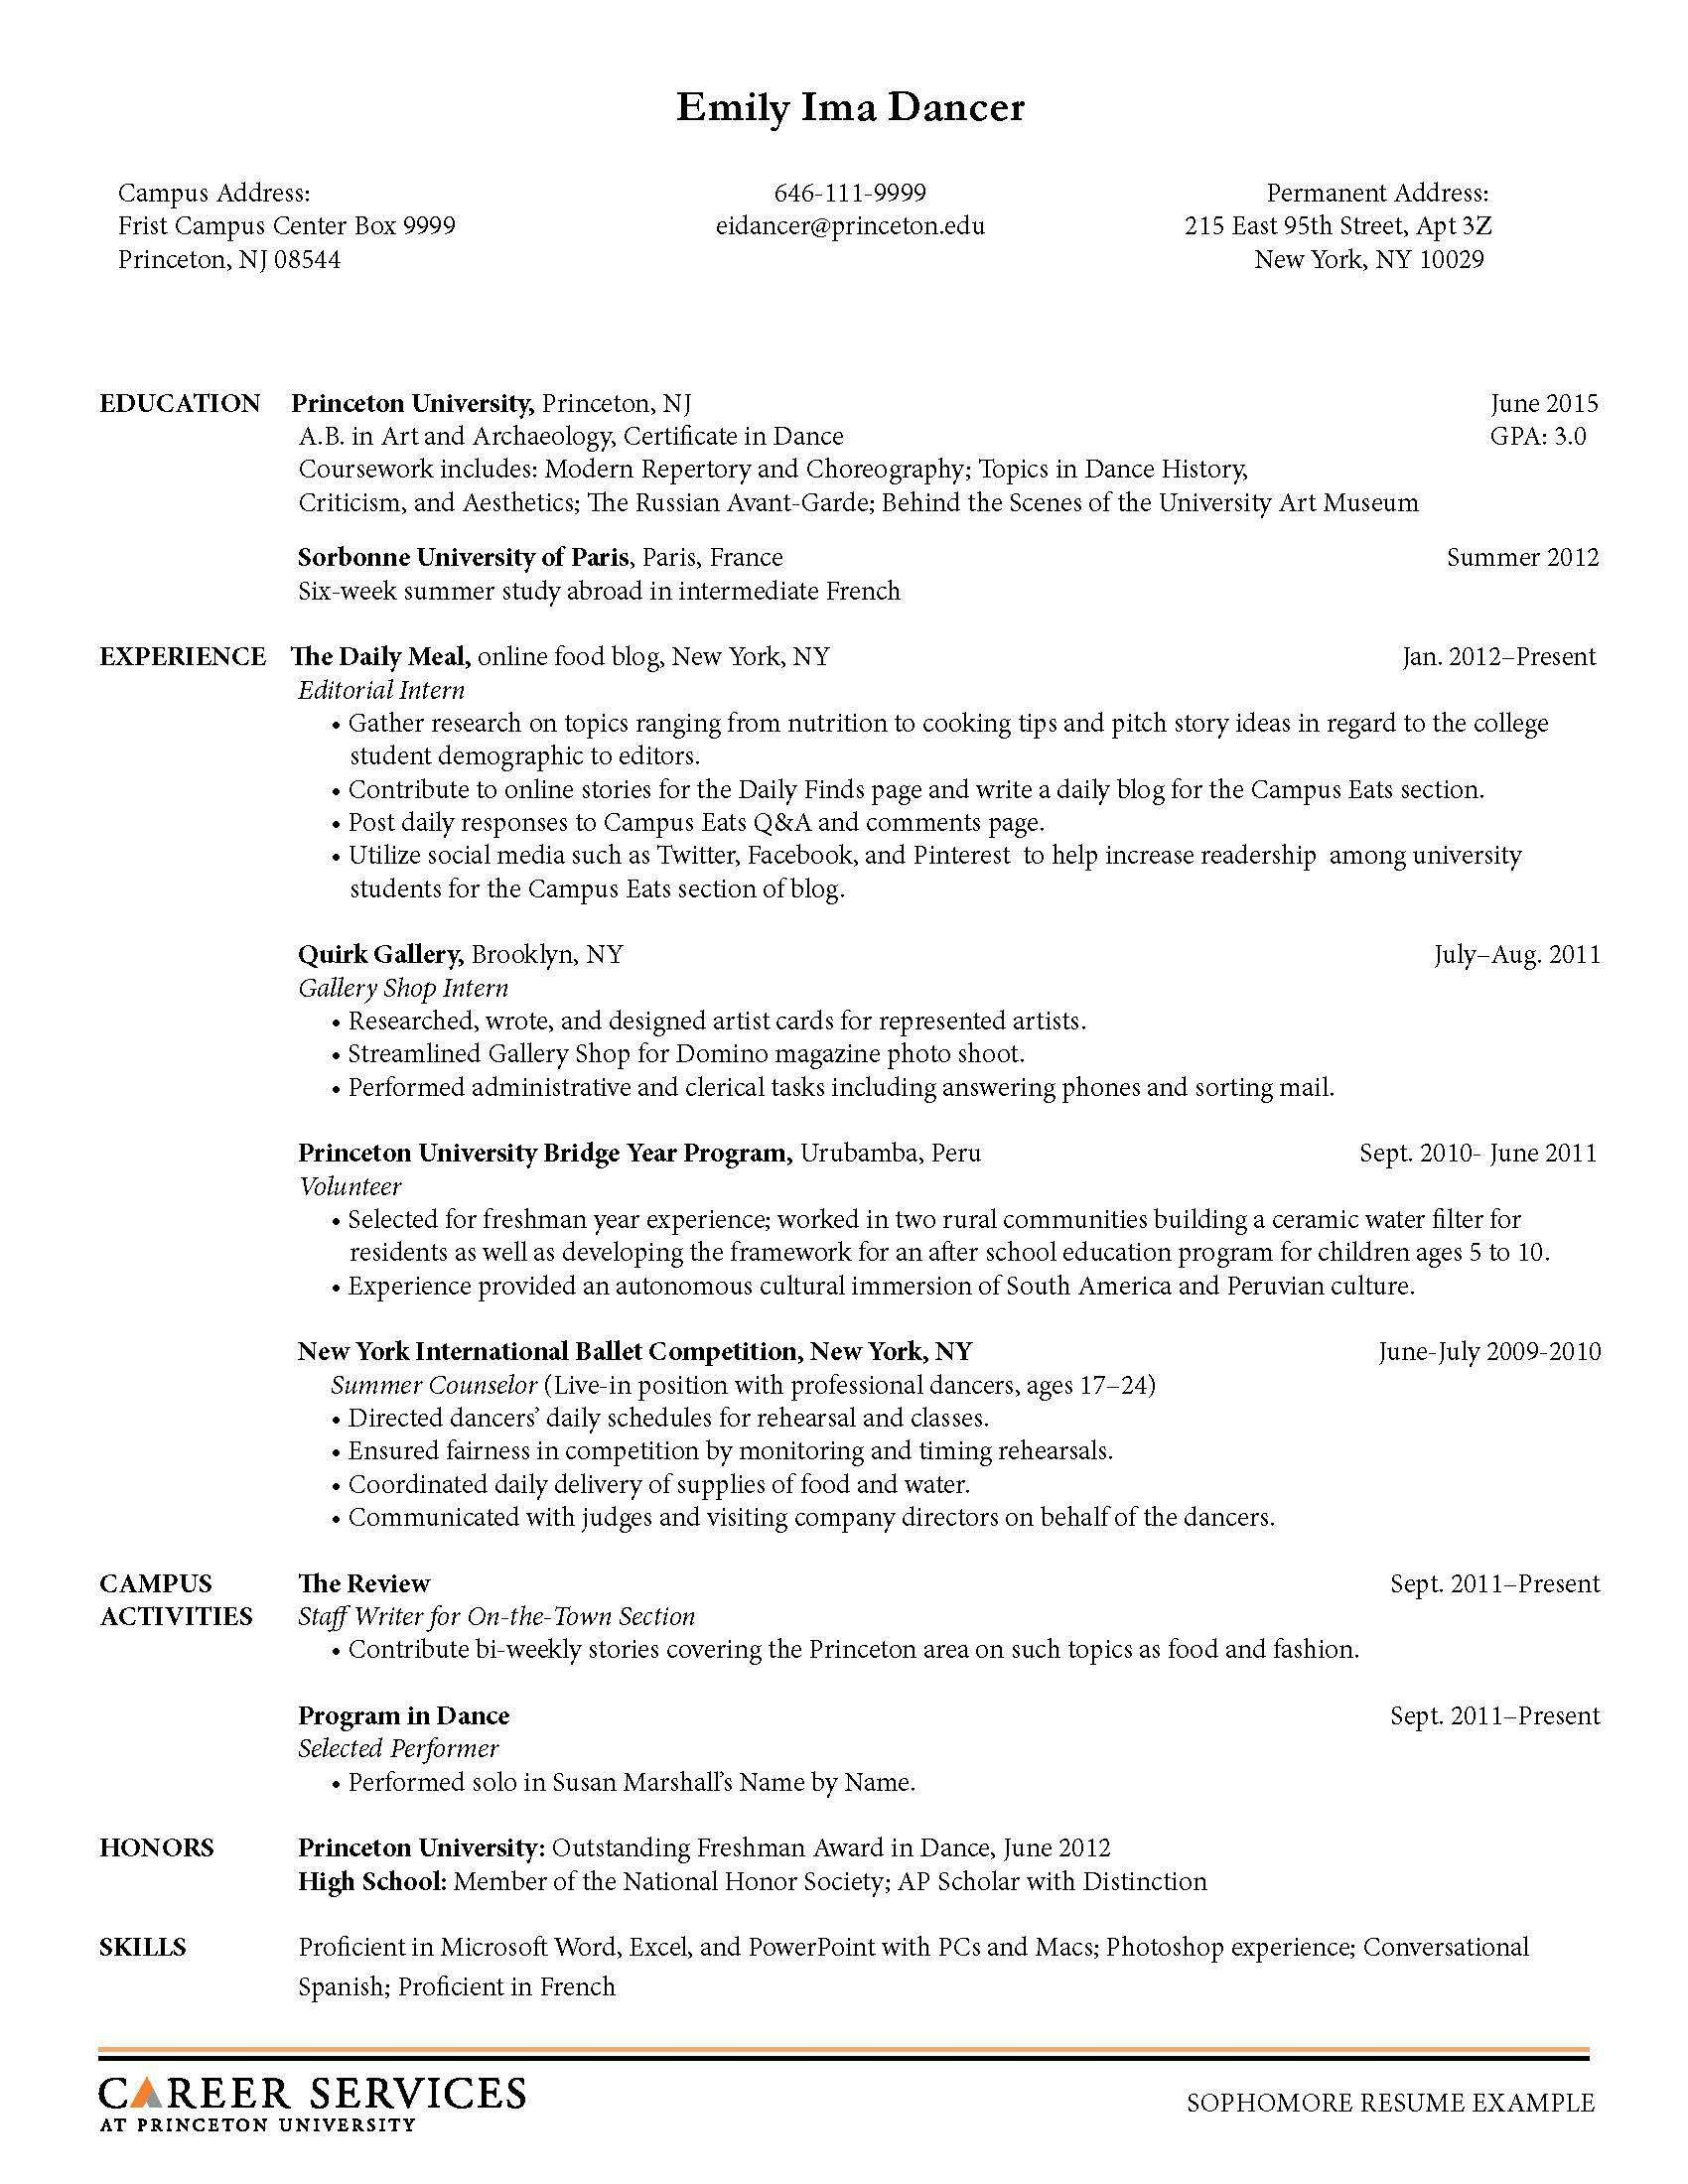 Resume Summary Examples Top Essay Writing Websiteswriting A College Application Essay Is